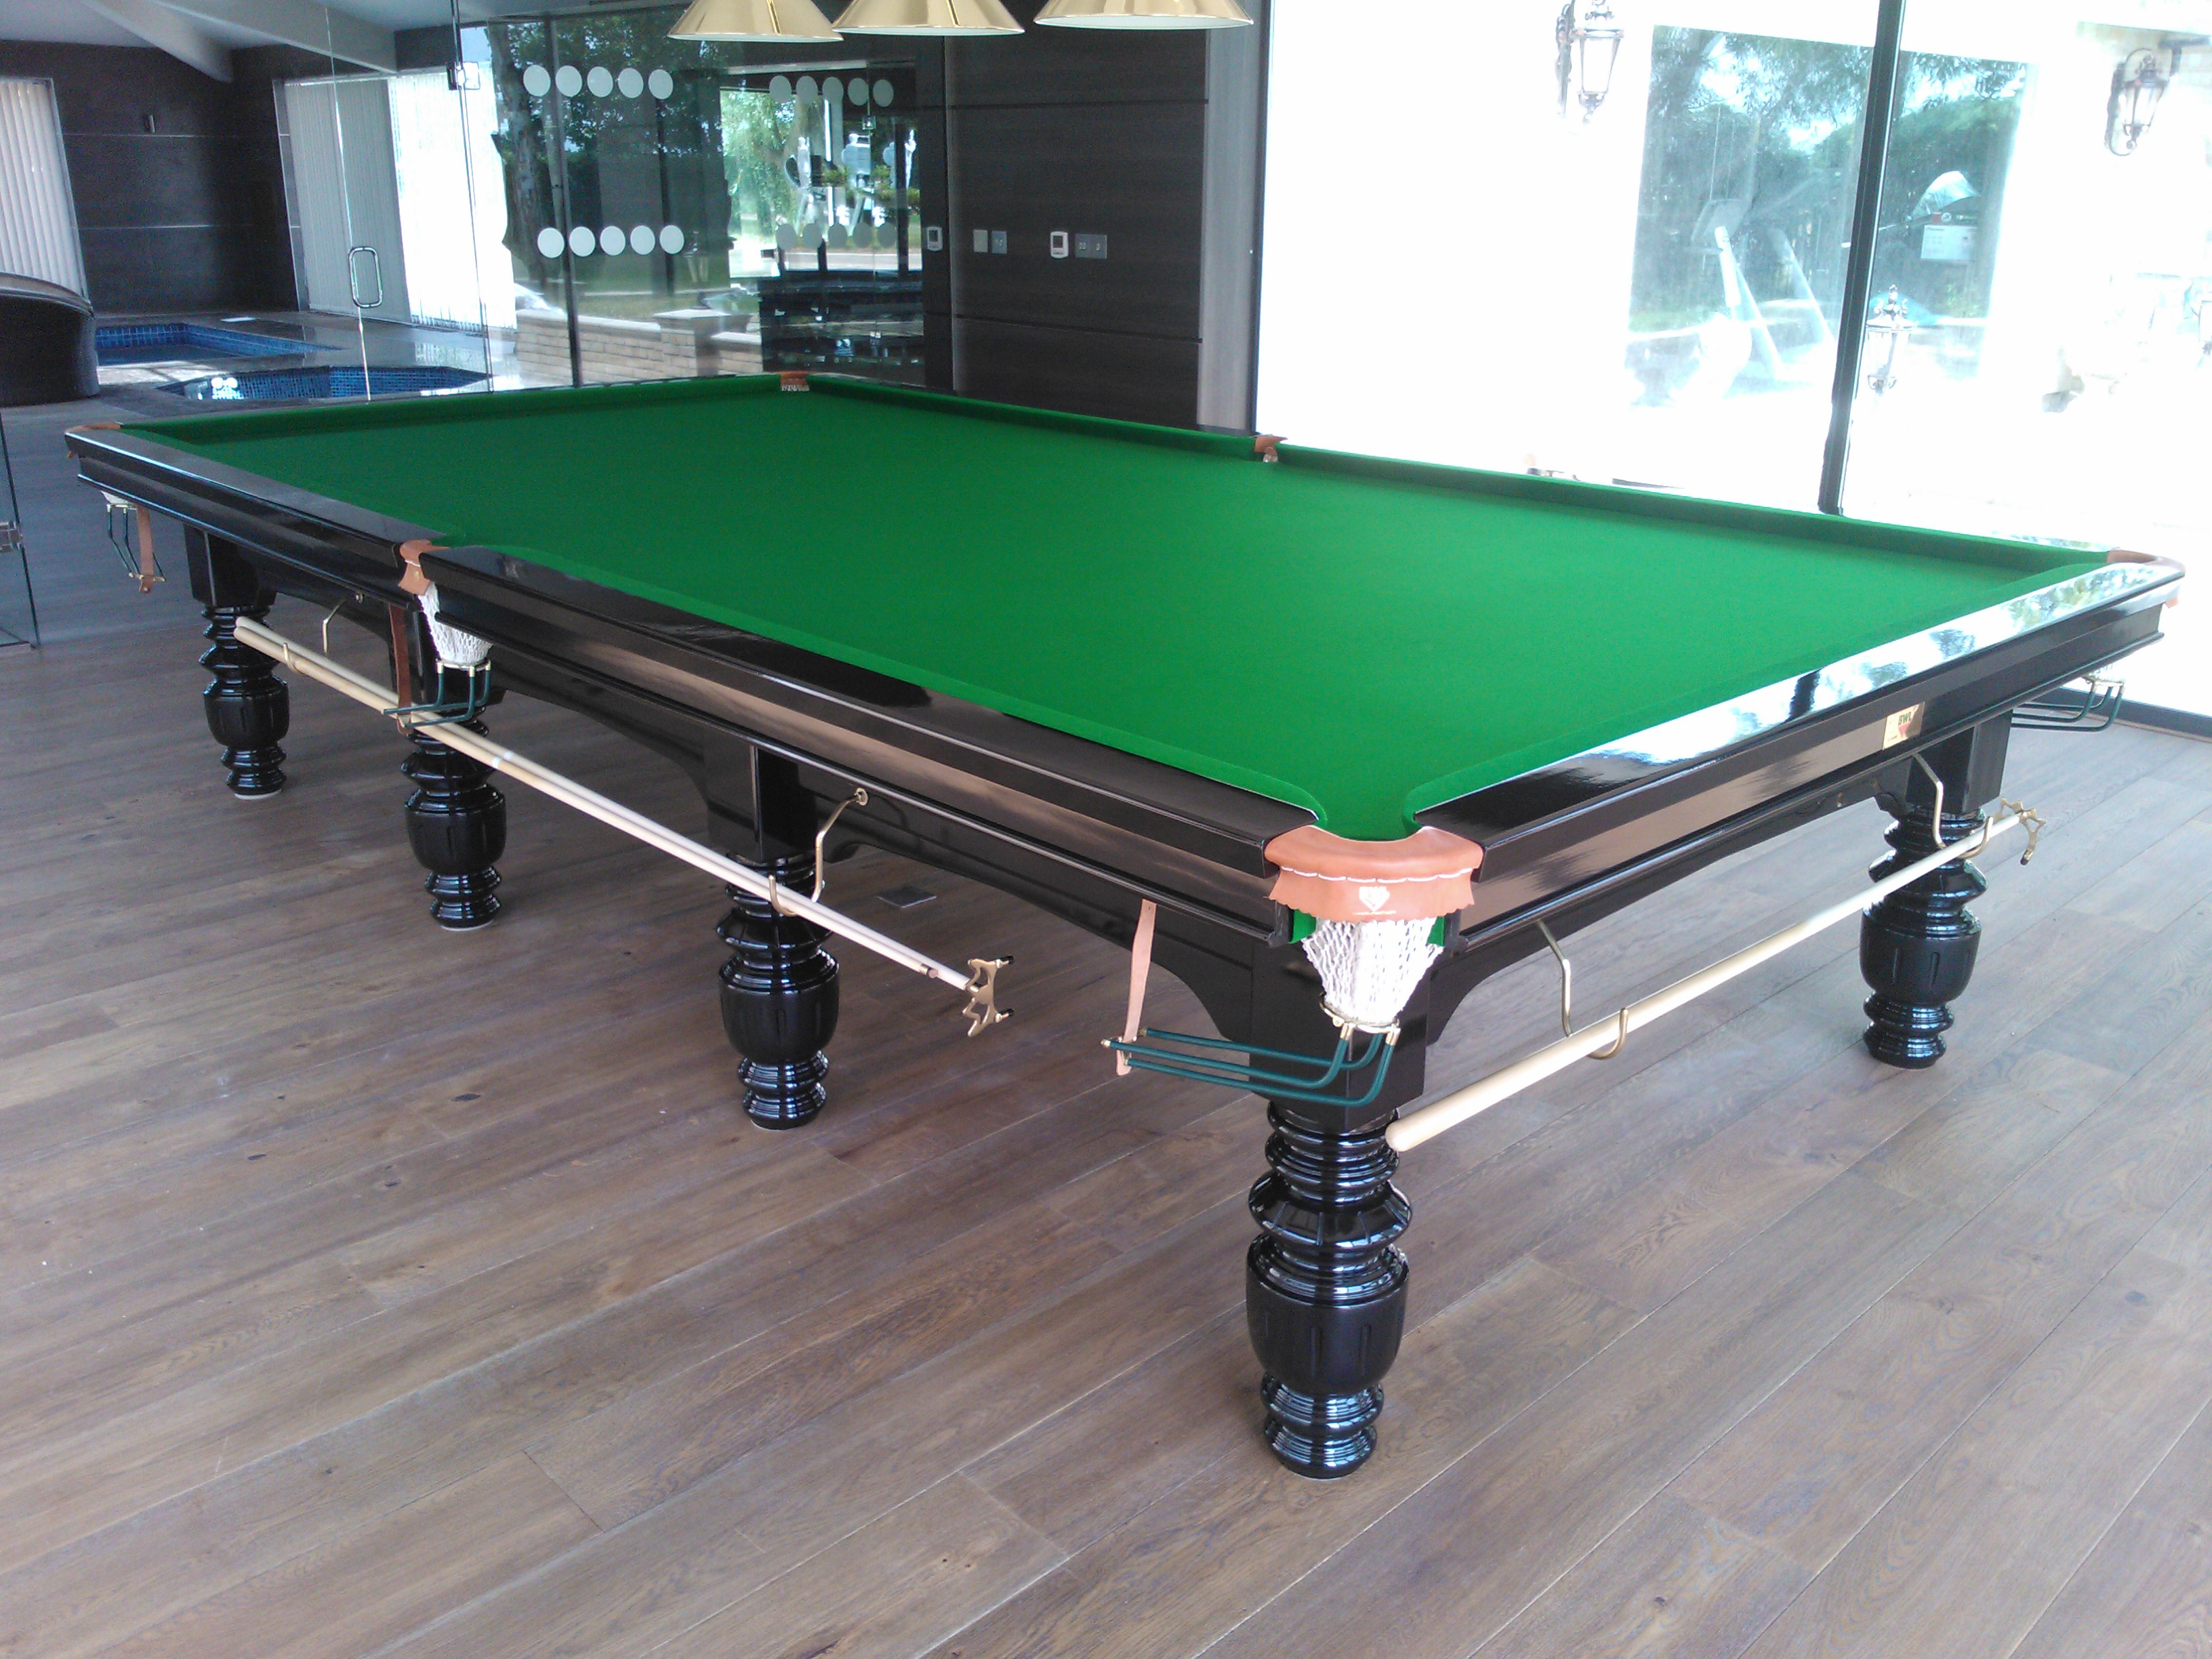 The Gallery BWL Sports - Kensington pool table